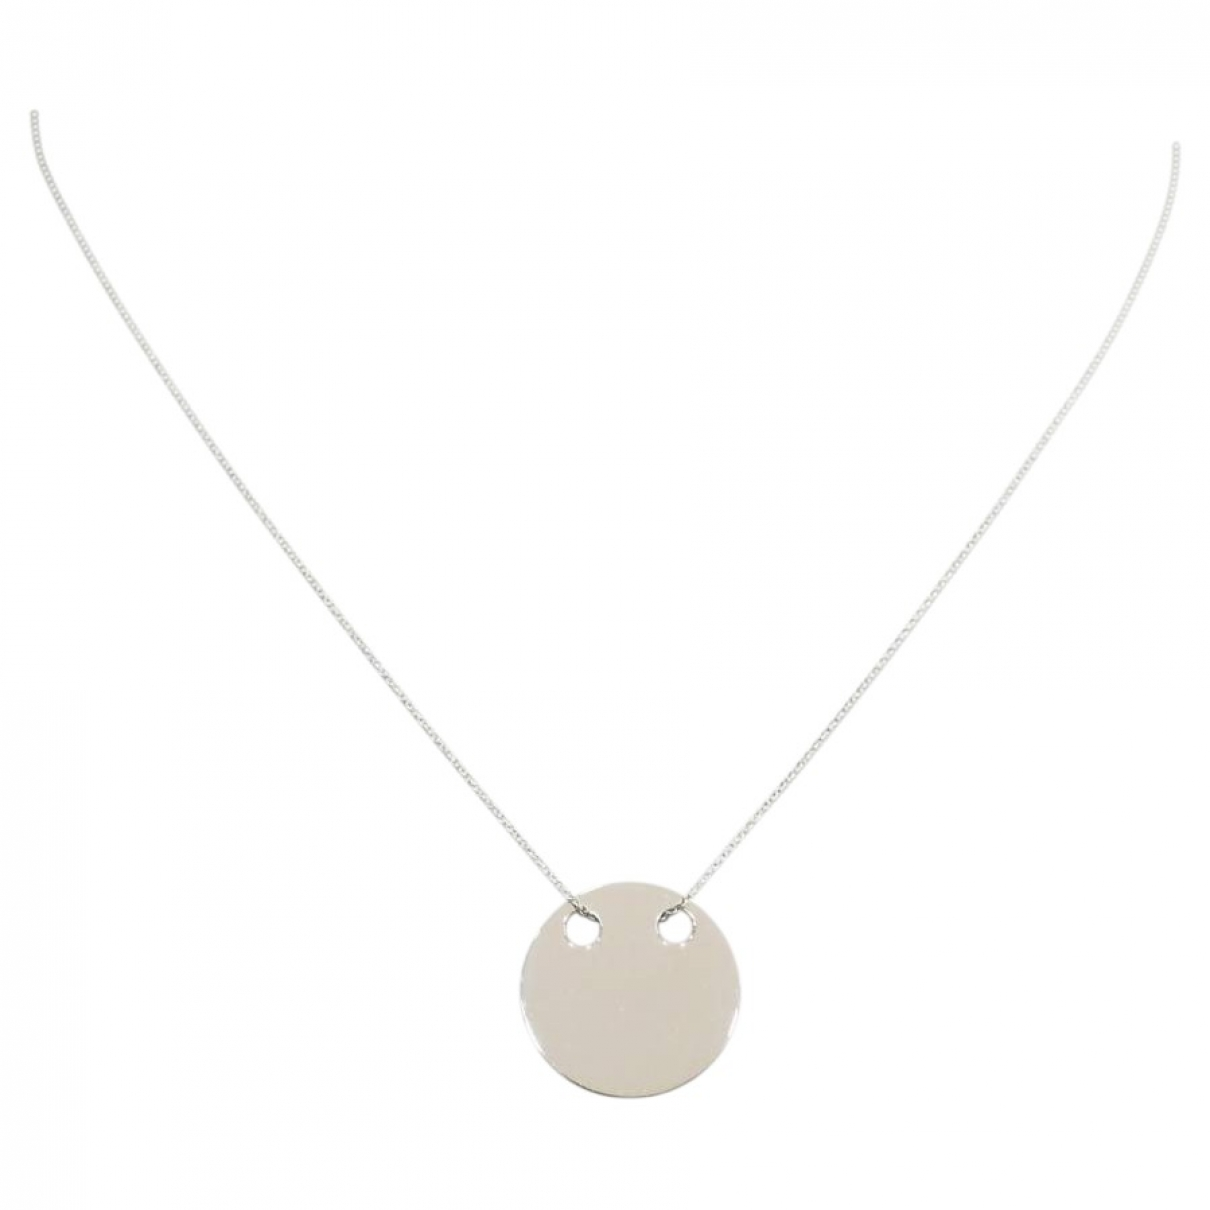 Ginette Ny \N Kette in  Silber Weissgold